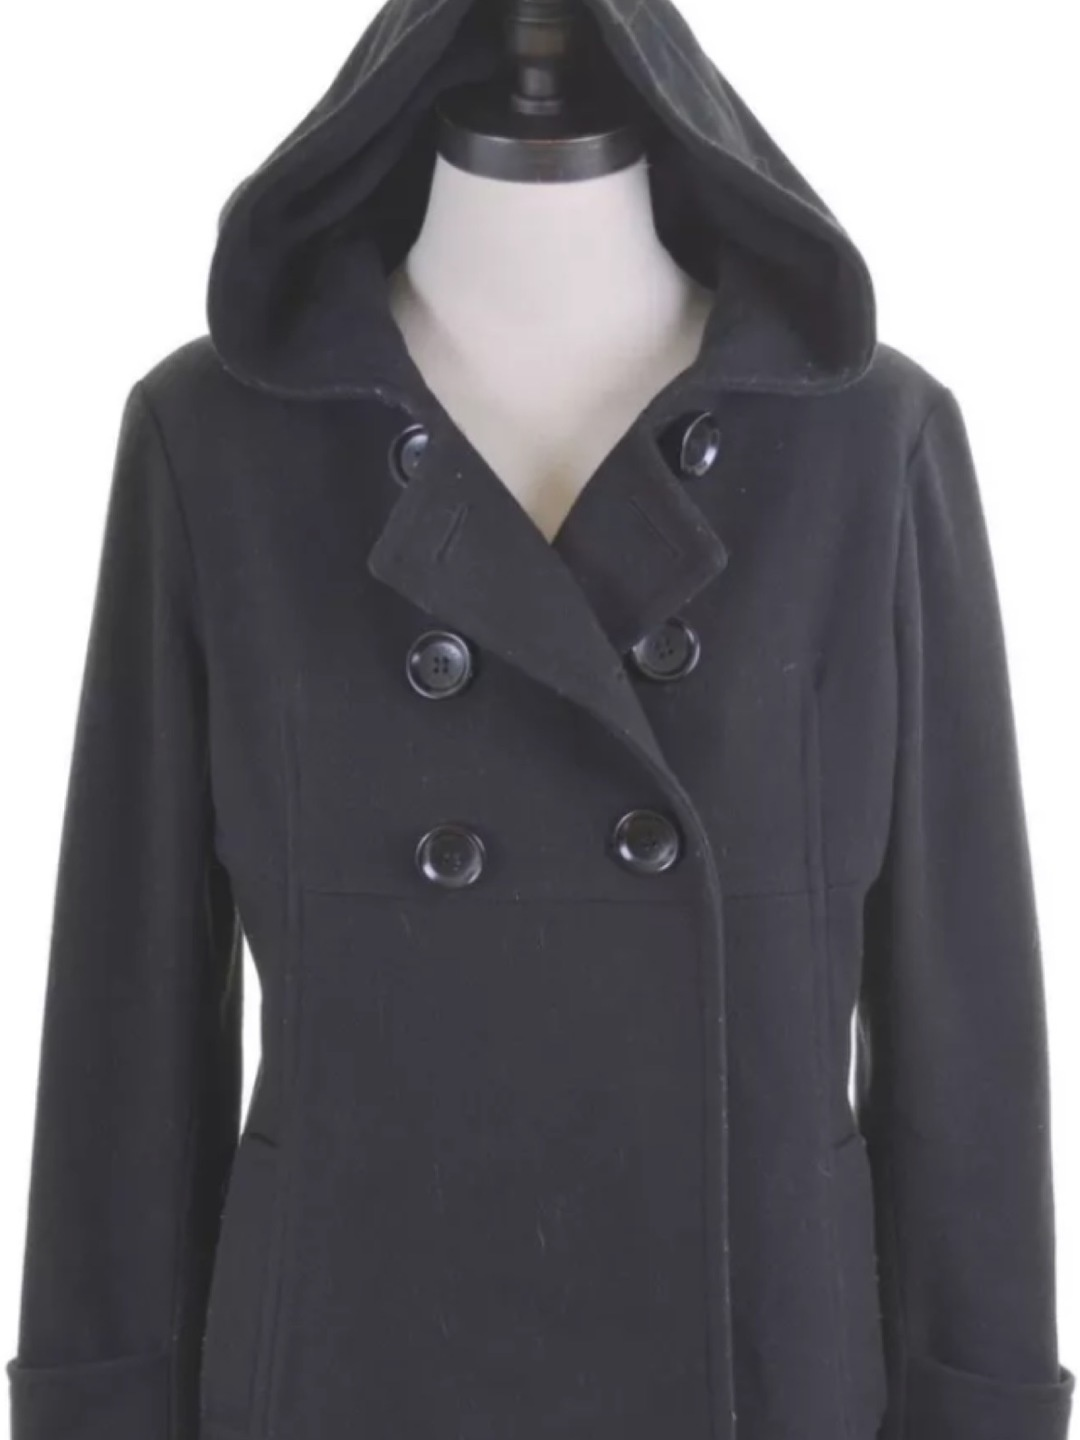 Women's coats & jackets - MICHAEL KORS photo 1